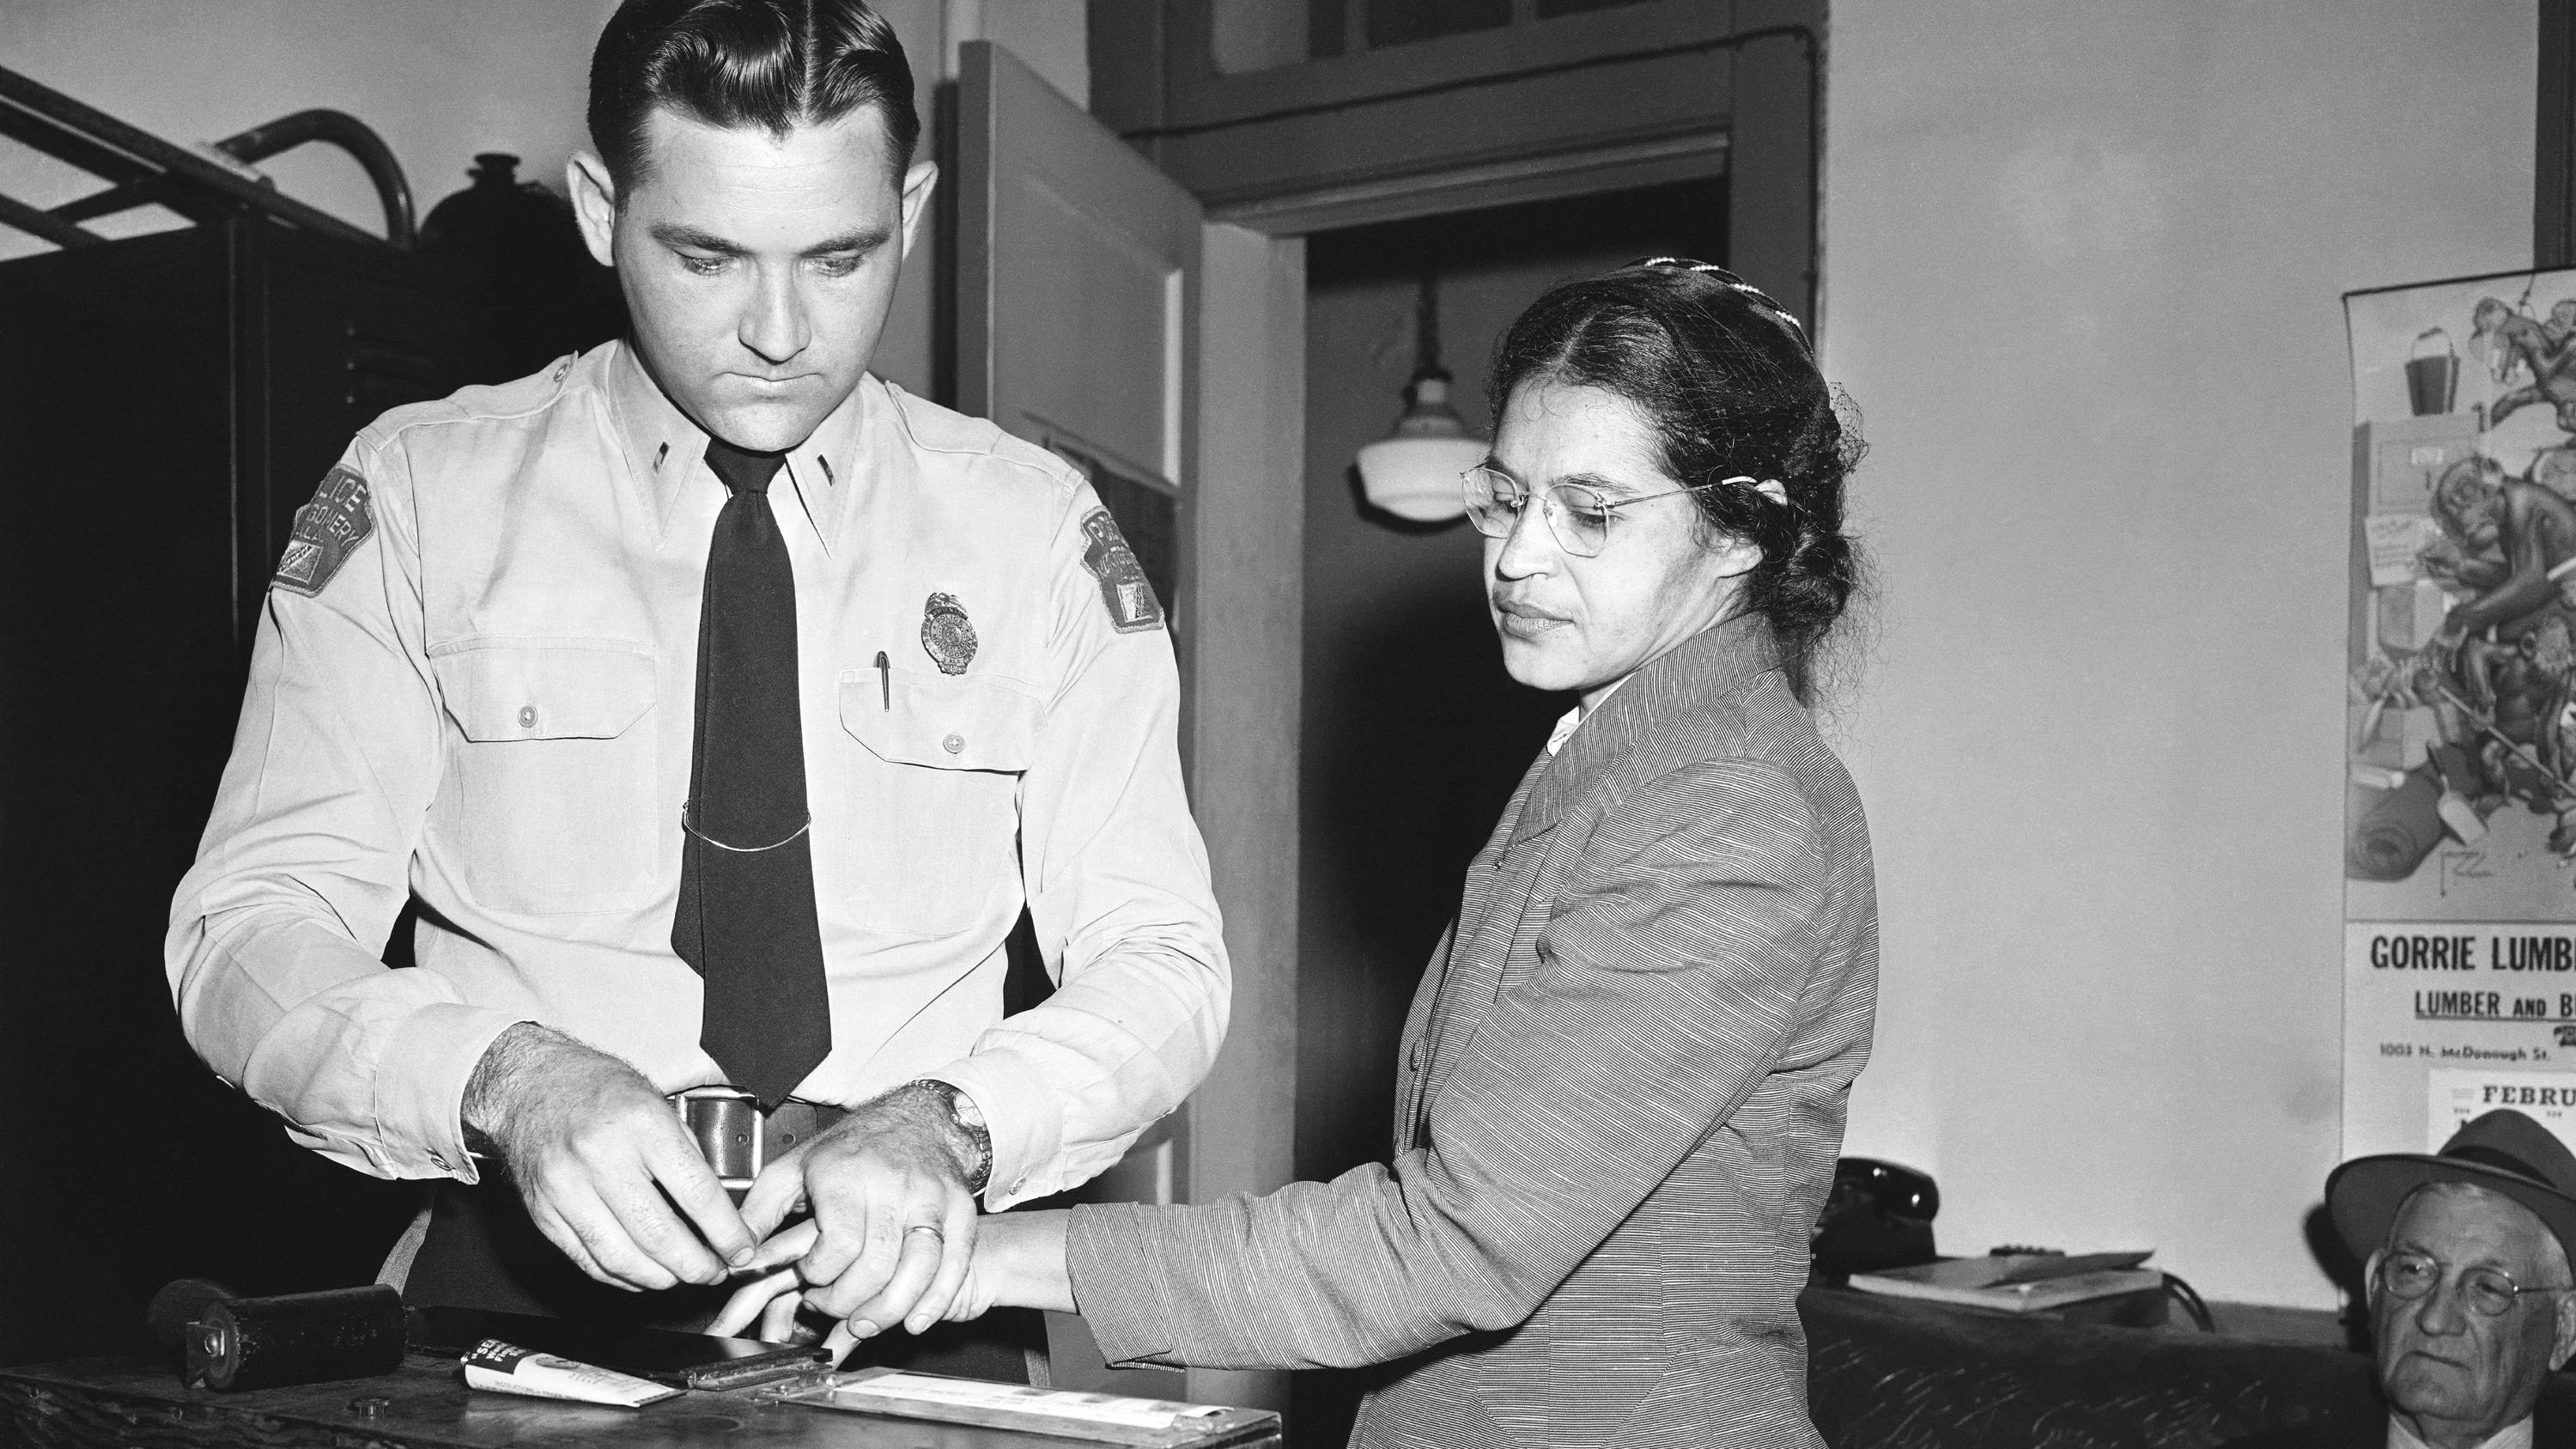 in montgomery rosa parks story offers a history lesson for police rosa parks whose refusal to give up her seat touched off the montgomery bus boycott